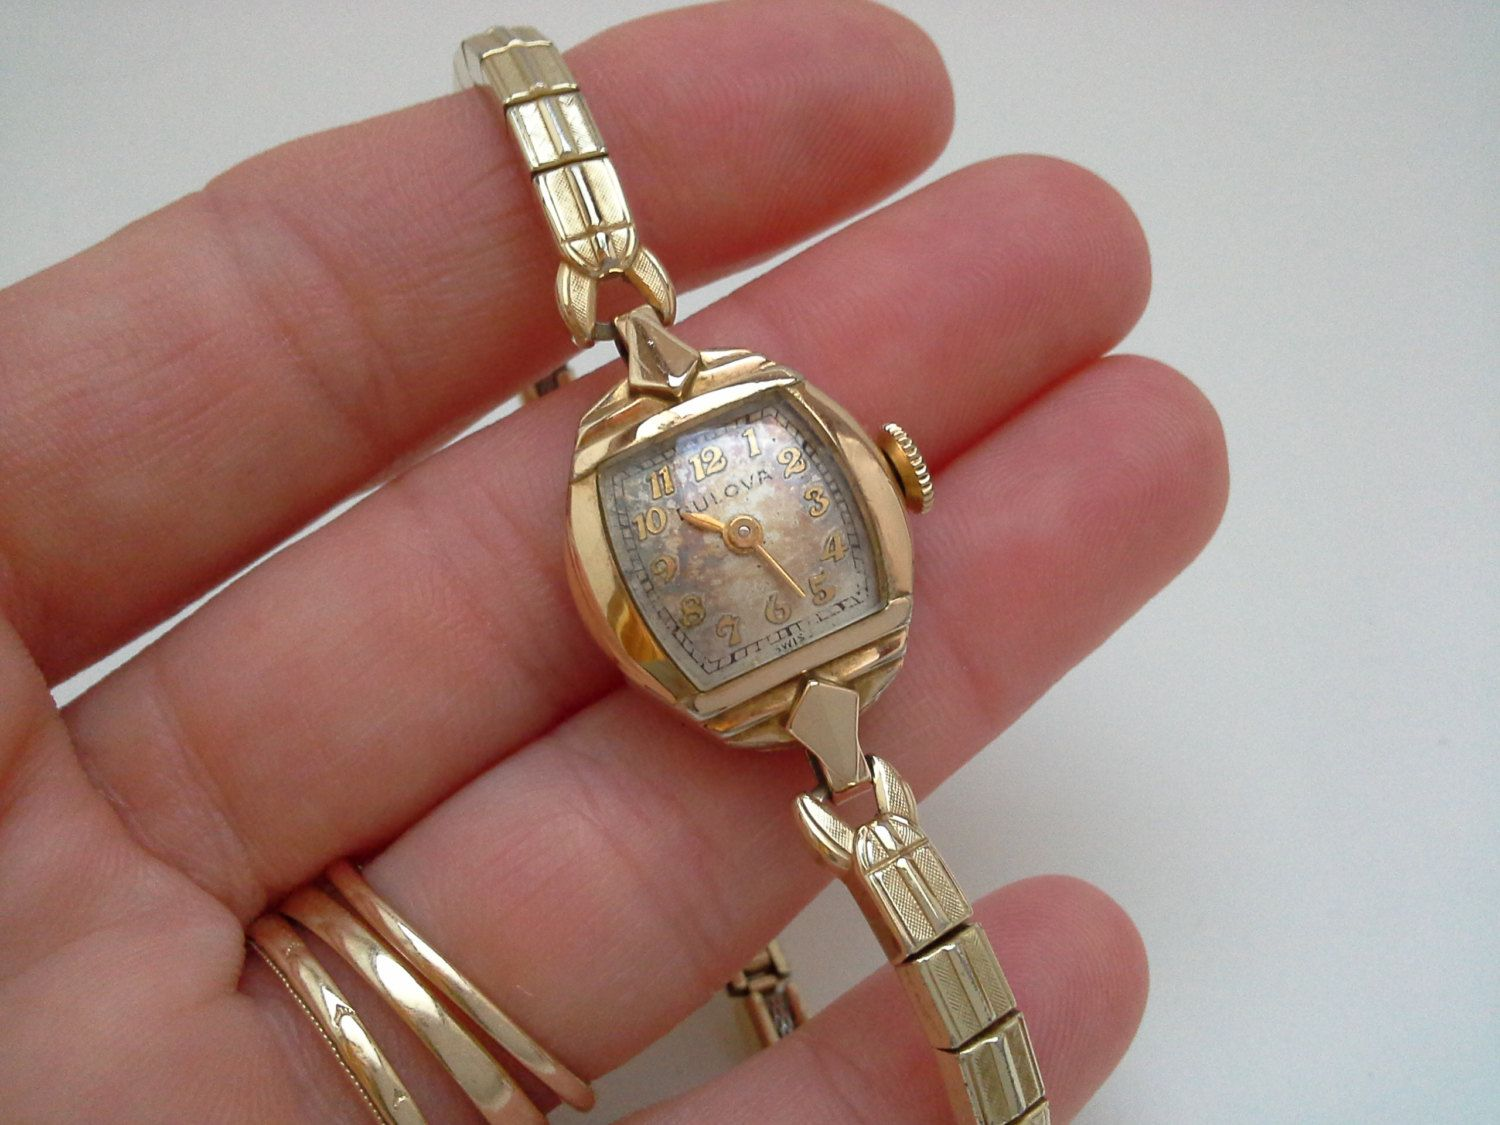 Vintage Bulova Watch Ladies Bulova Watch Gold Filled Watch Running Speidel Watch Band Working Vintage Womens Watch Vintage Ladies Watch Vintage Bulova Watches Vintage Watches Womens Watches